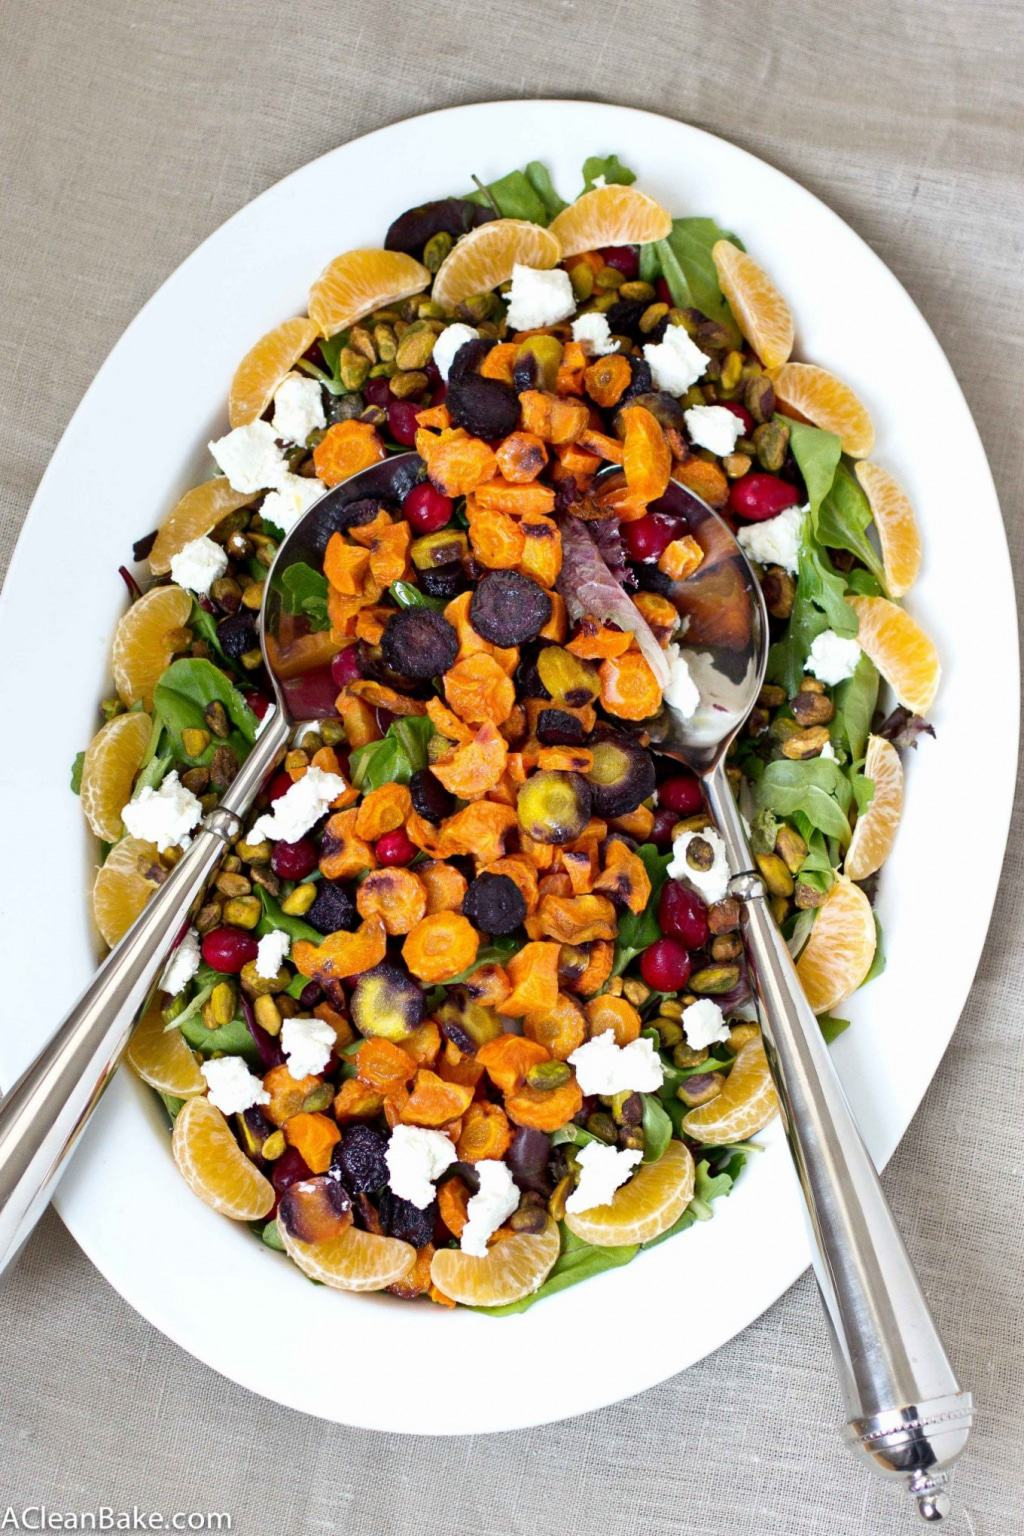 Roasted Rainbow Carrot Salad with Cranberries, Pistachios and